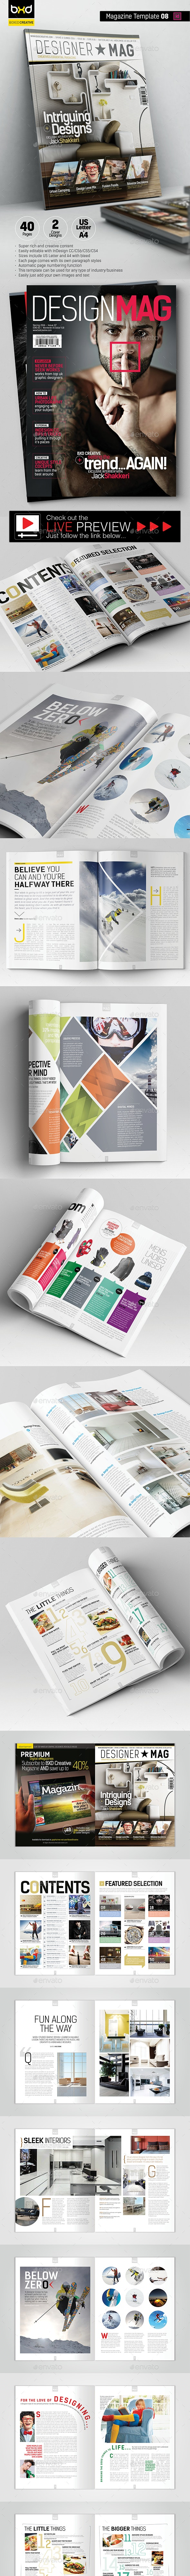 Magazine Template - InDesign 40 Page Layout V8 - Magazines Print Templates